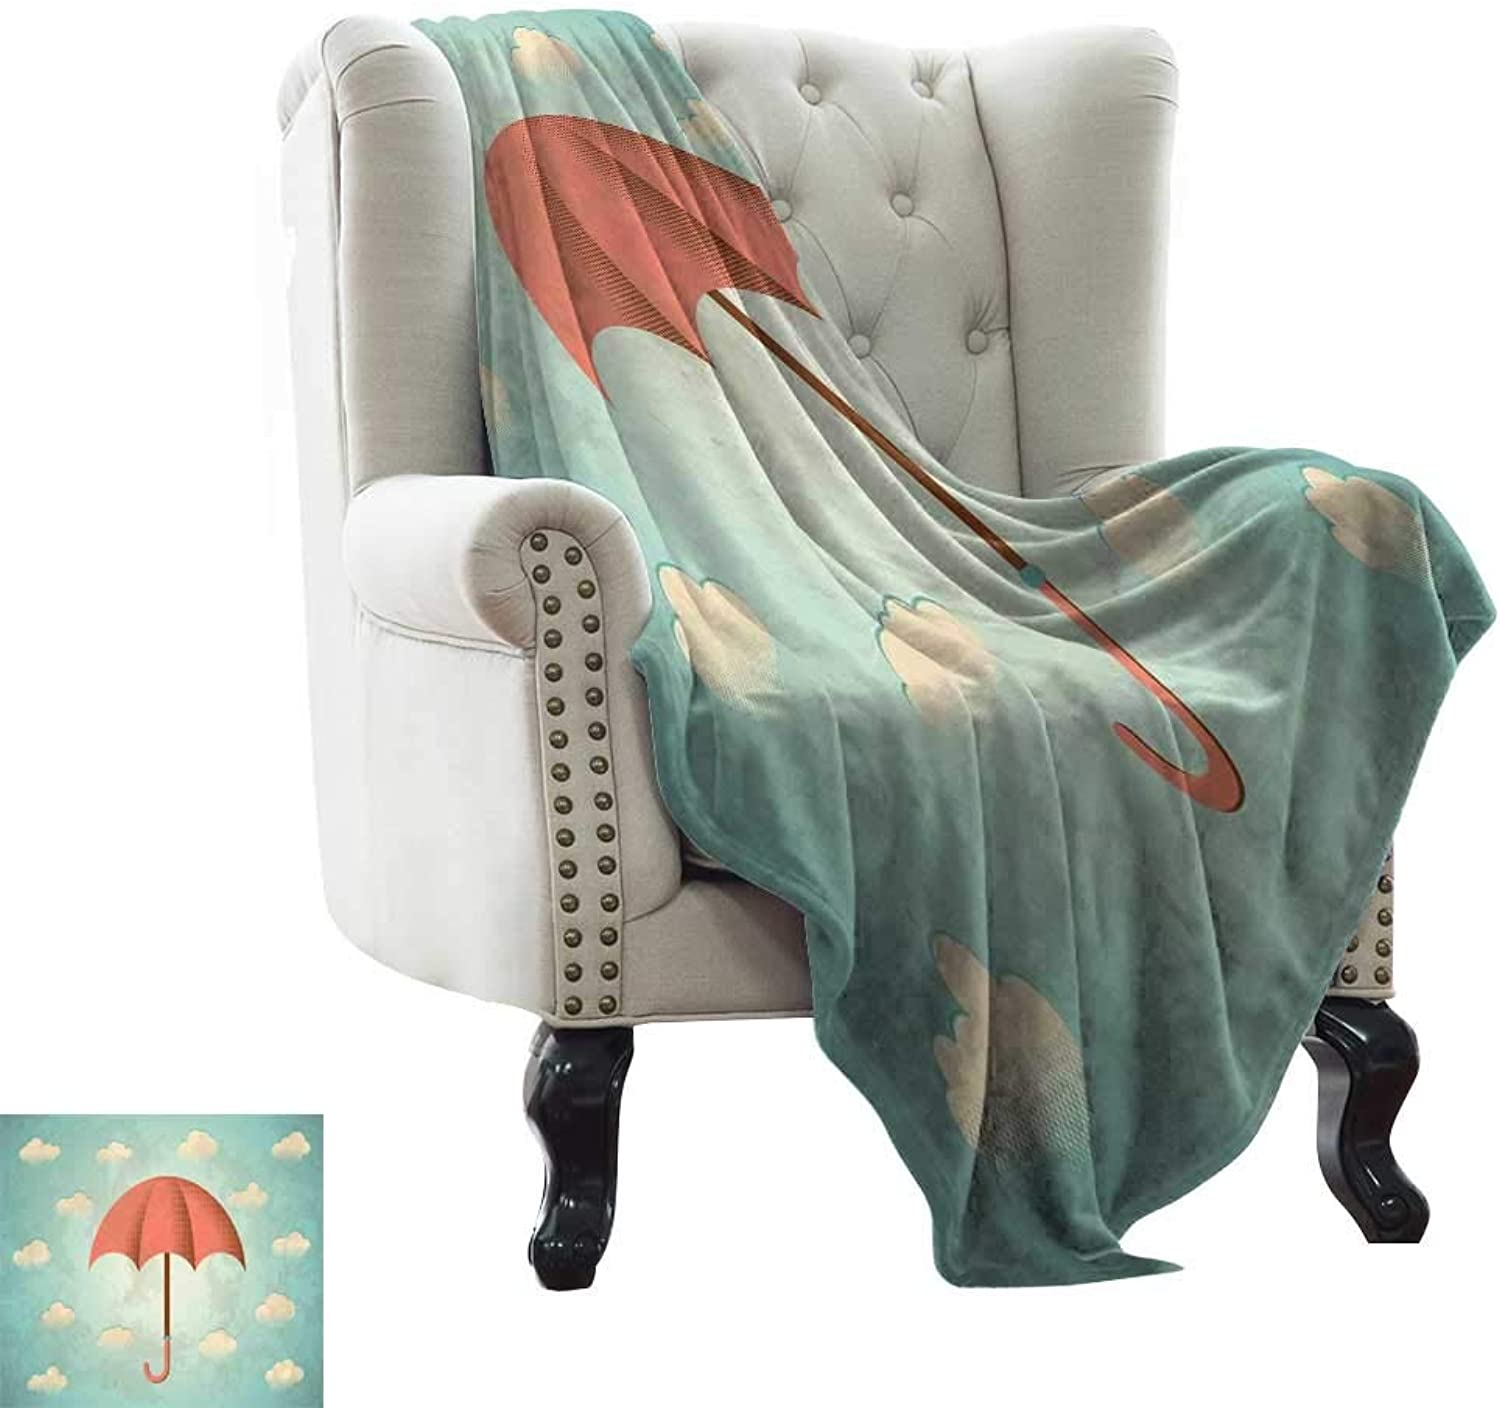 LsWOW Weighted Blanket for Kids Umbrella,Aged Vintage Composition with Clouds and Umbrella Grunge Look,Turquoise Cream Dark Coral Blanket for Sofa Couch TV Bed All Season 50 x60